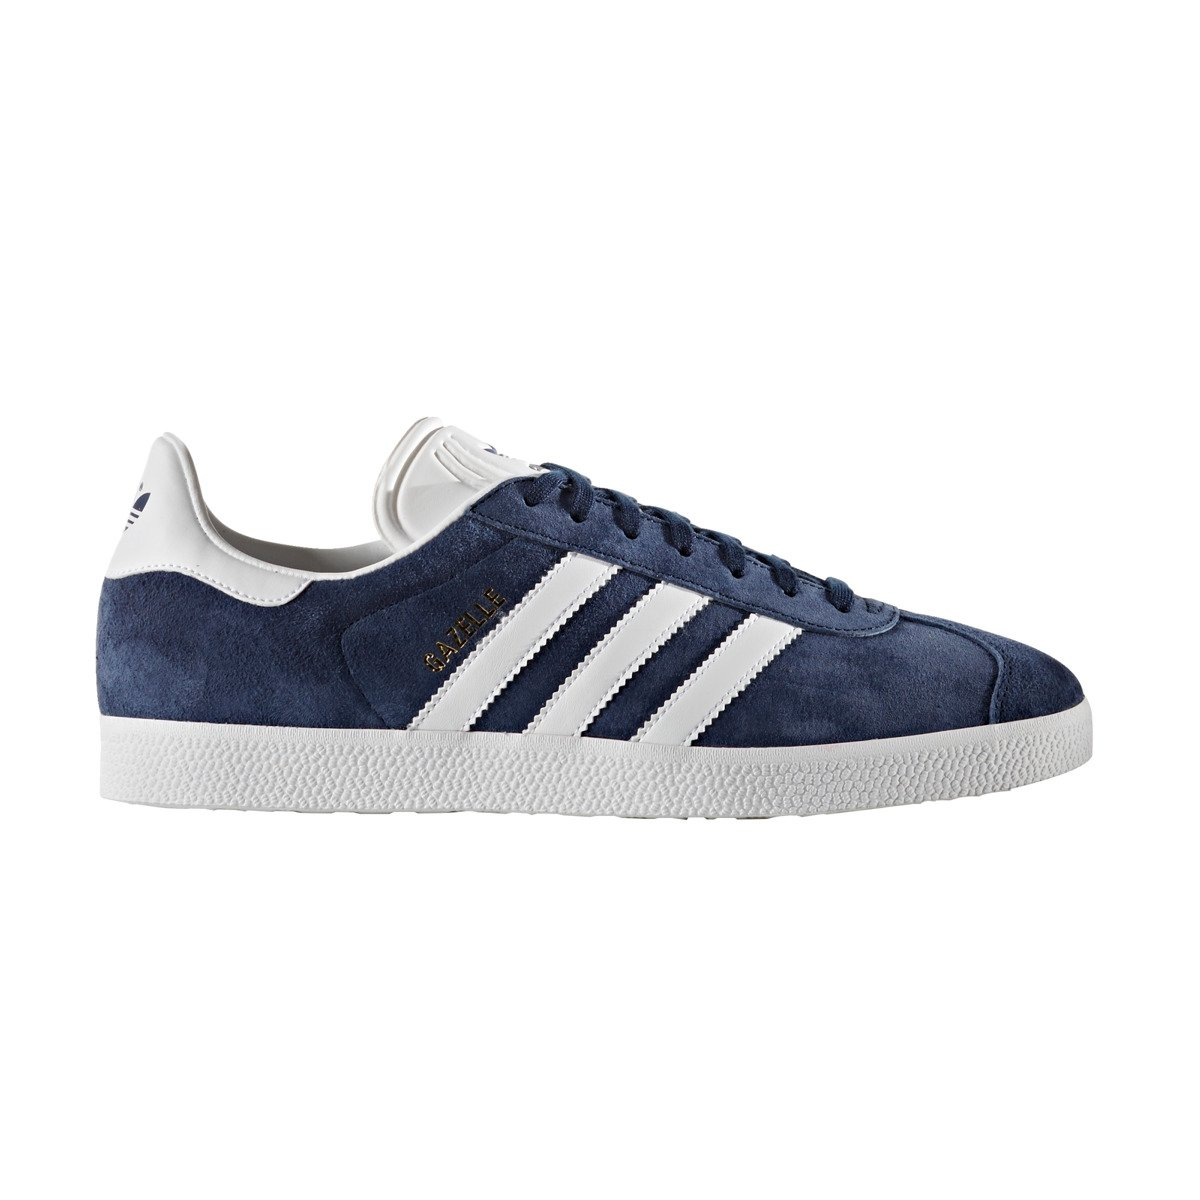 adidas gazelle bb5478 collegiate navy basketball shoes. Black Bedroom Furniture Sets. Home Design Ideas